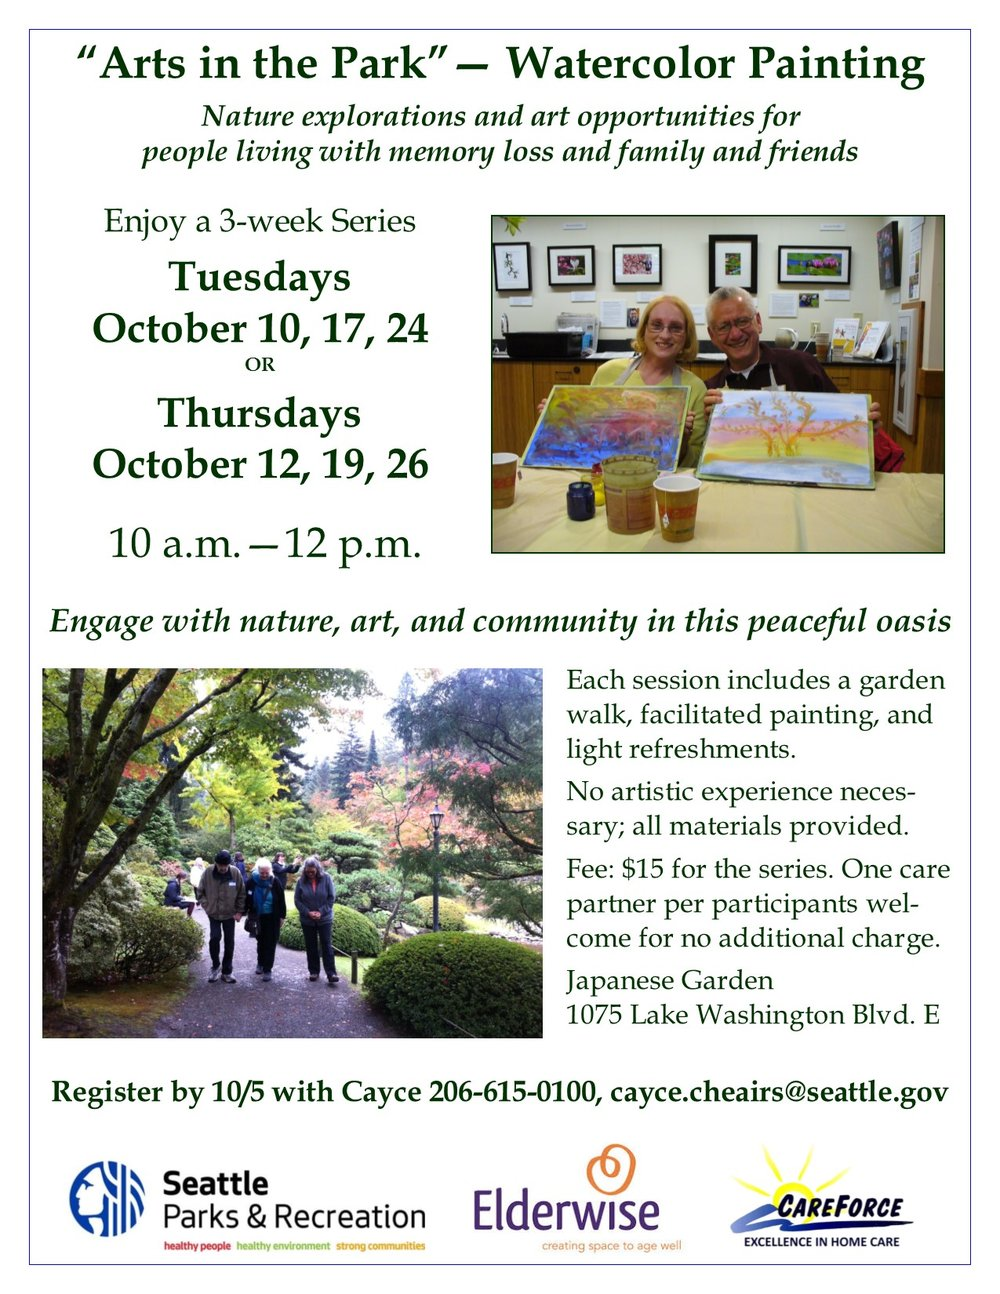 Arts in the Park Watercolor flyer October both sessions 2017.jpg